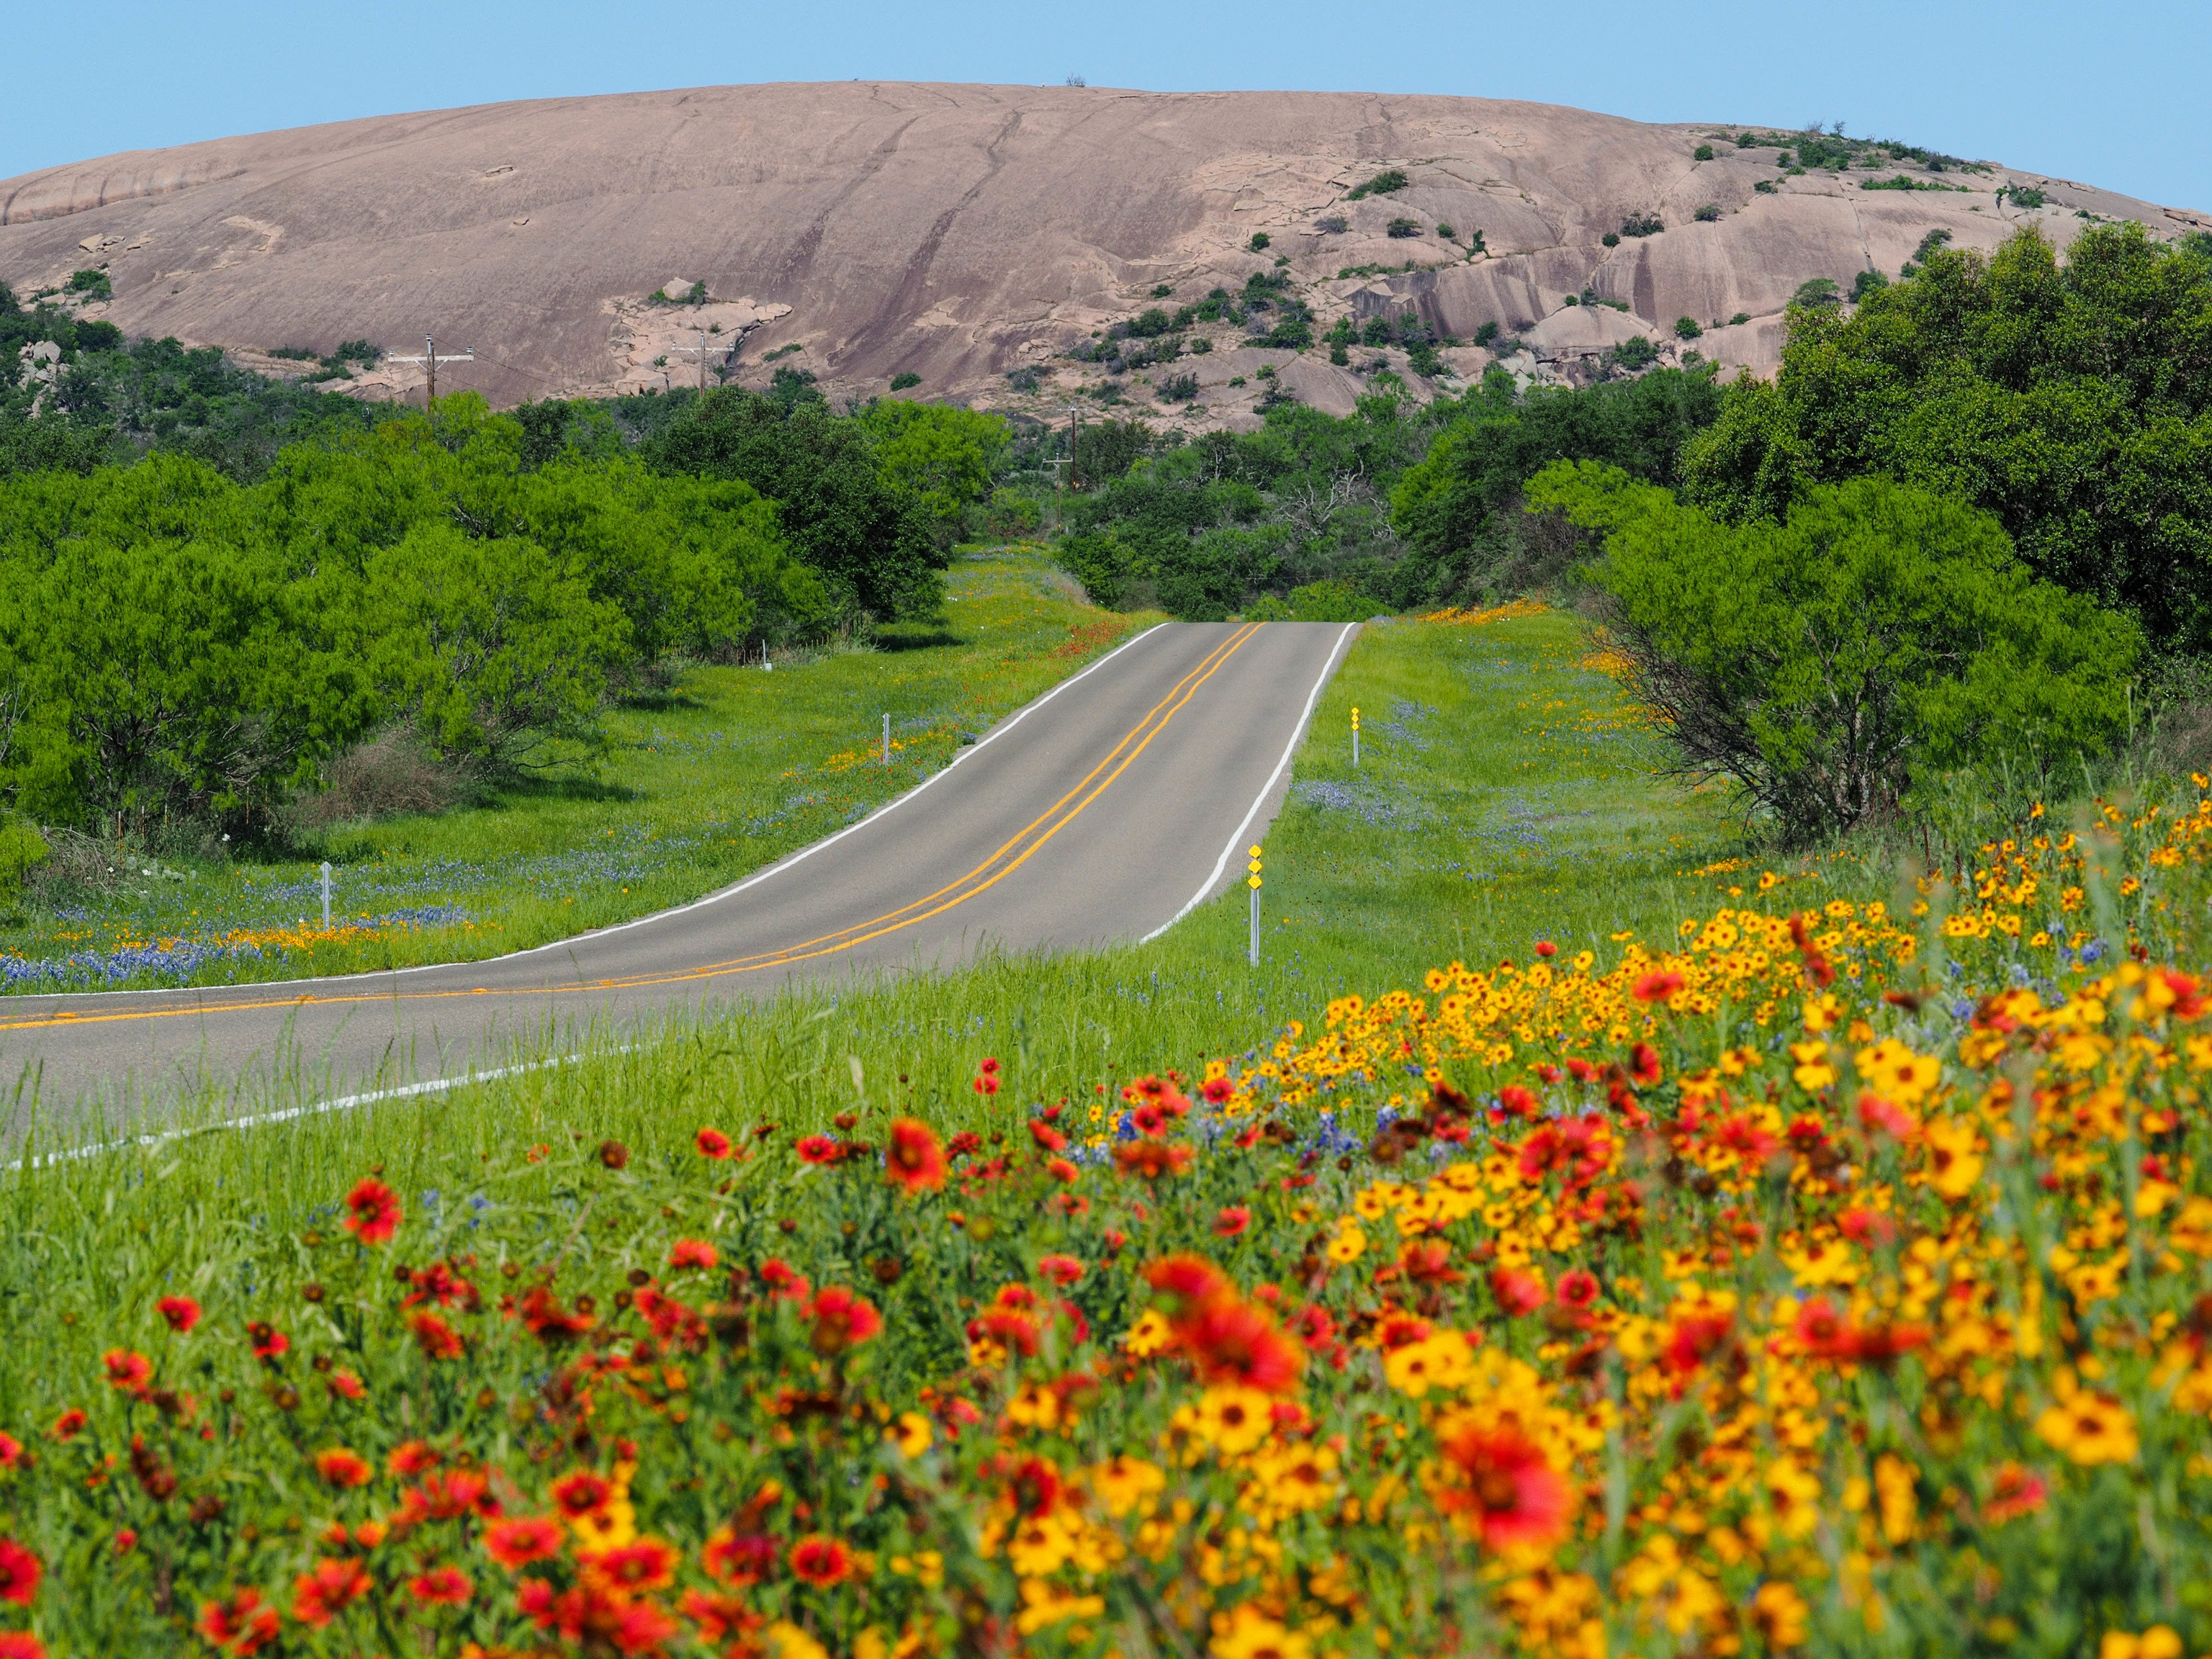 Road Trips Trip Ideas grass sky outdoor flower wildflower field vegetation plant road meadow rural area hill mountain landscape grassland agriculture tree crop mount scenery Farm prairie ecoregion pasture plantation lush surrounded